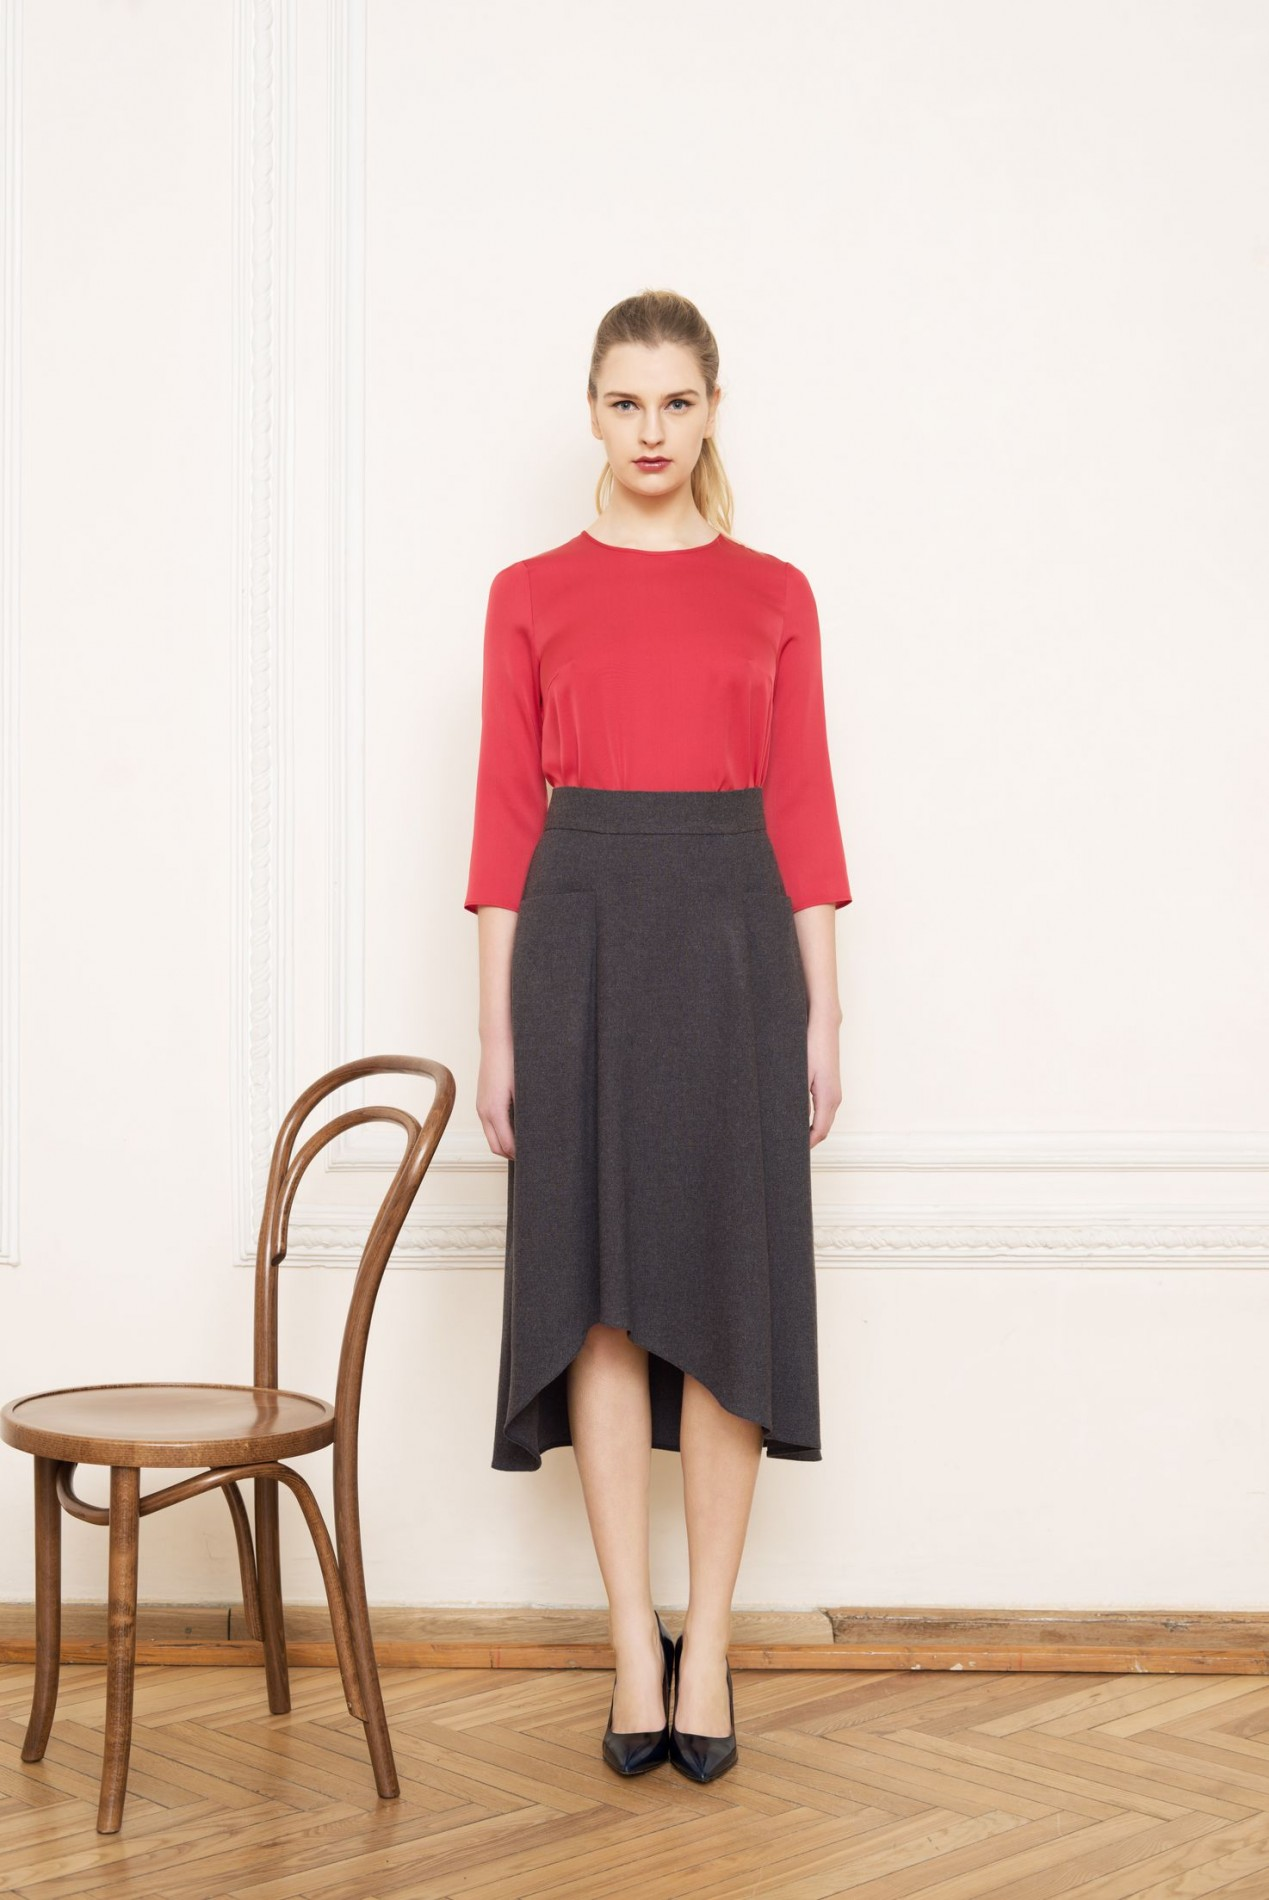 APENNINES Asymmetric Blouse and ALPS A-form Skirt